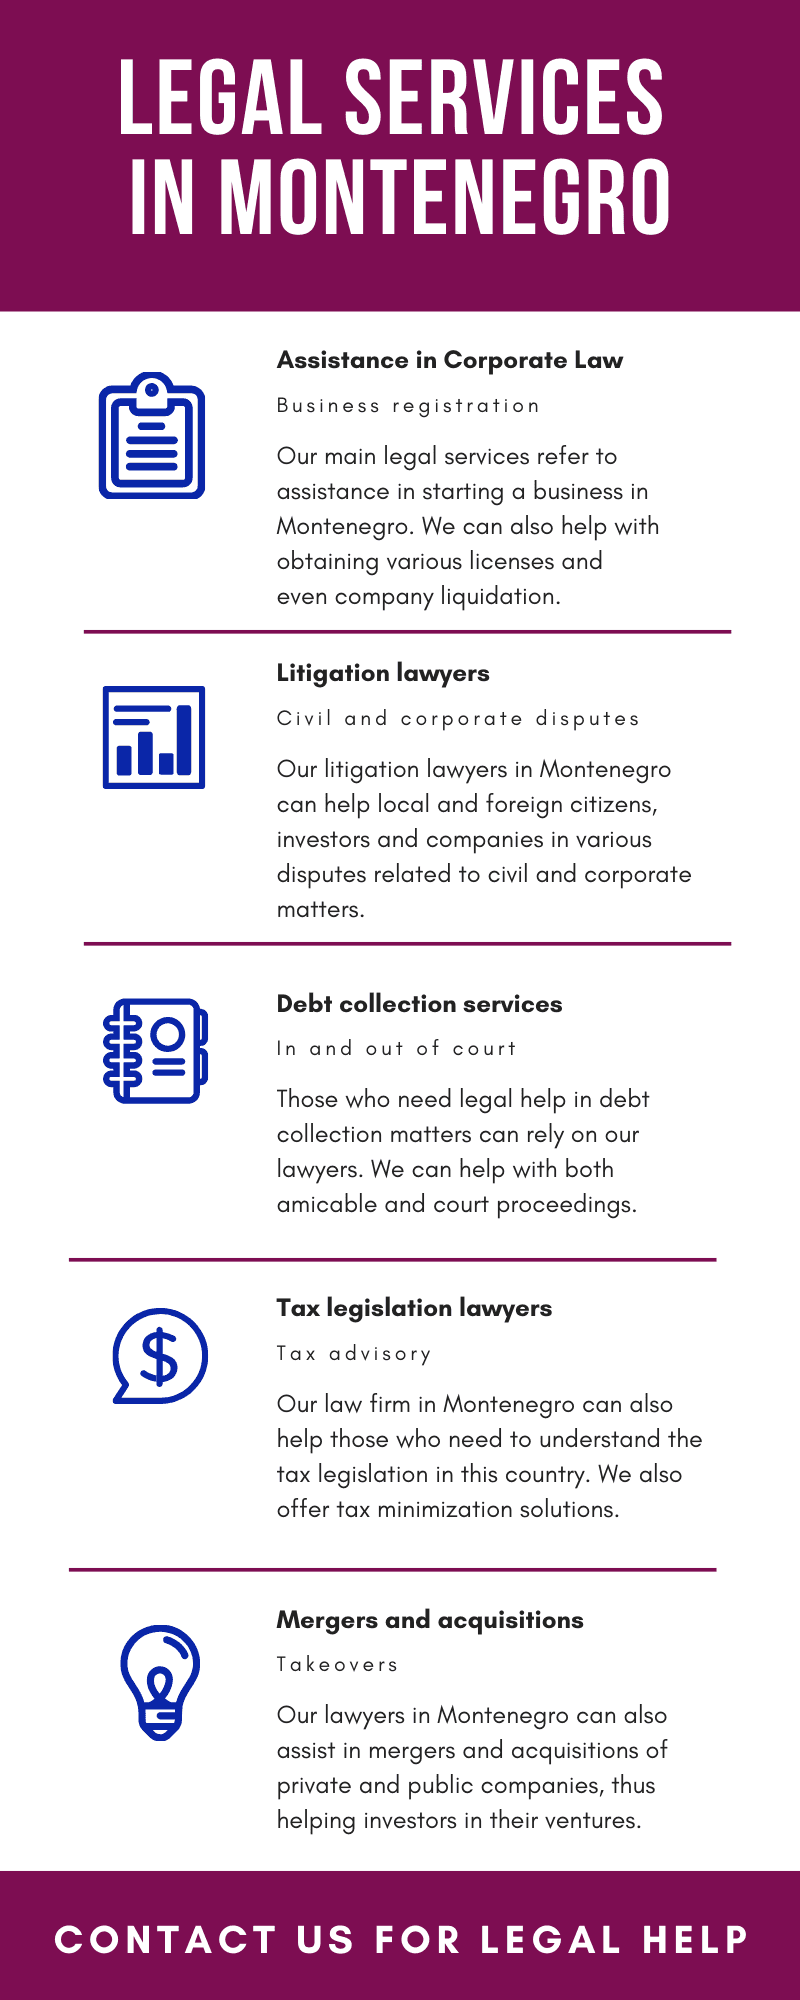 Legal-services-in-Montenegro.png